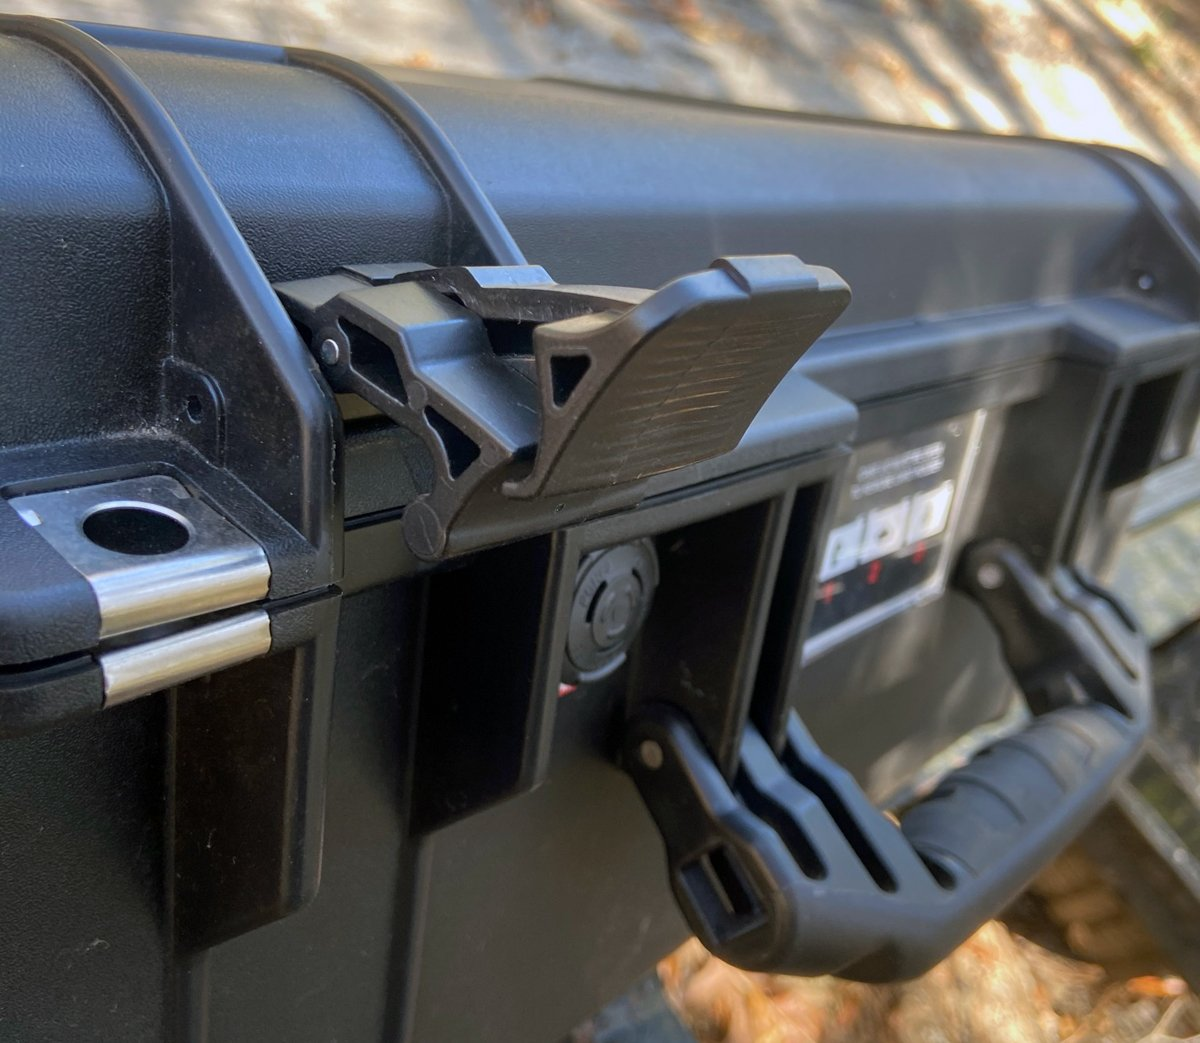 Open latch on Pelican 1535 Air case (Photo © Russ Chastain)